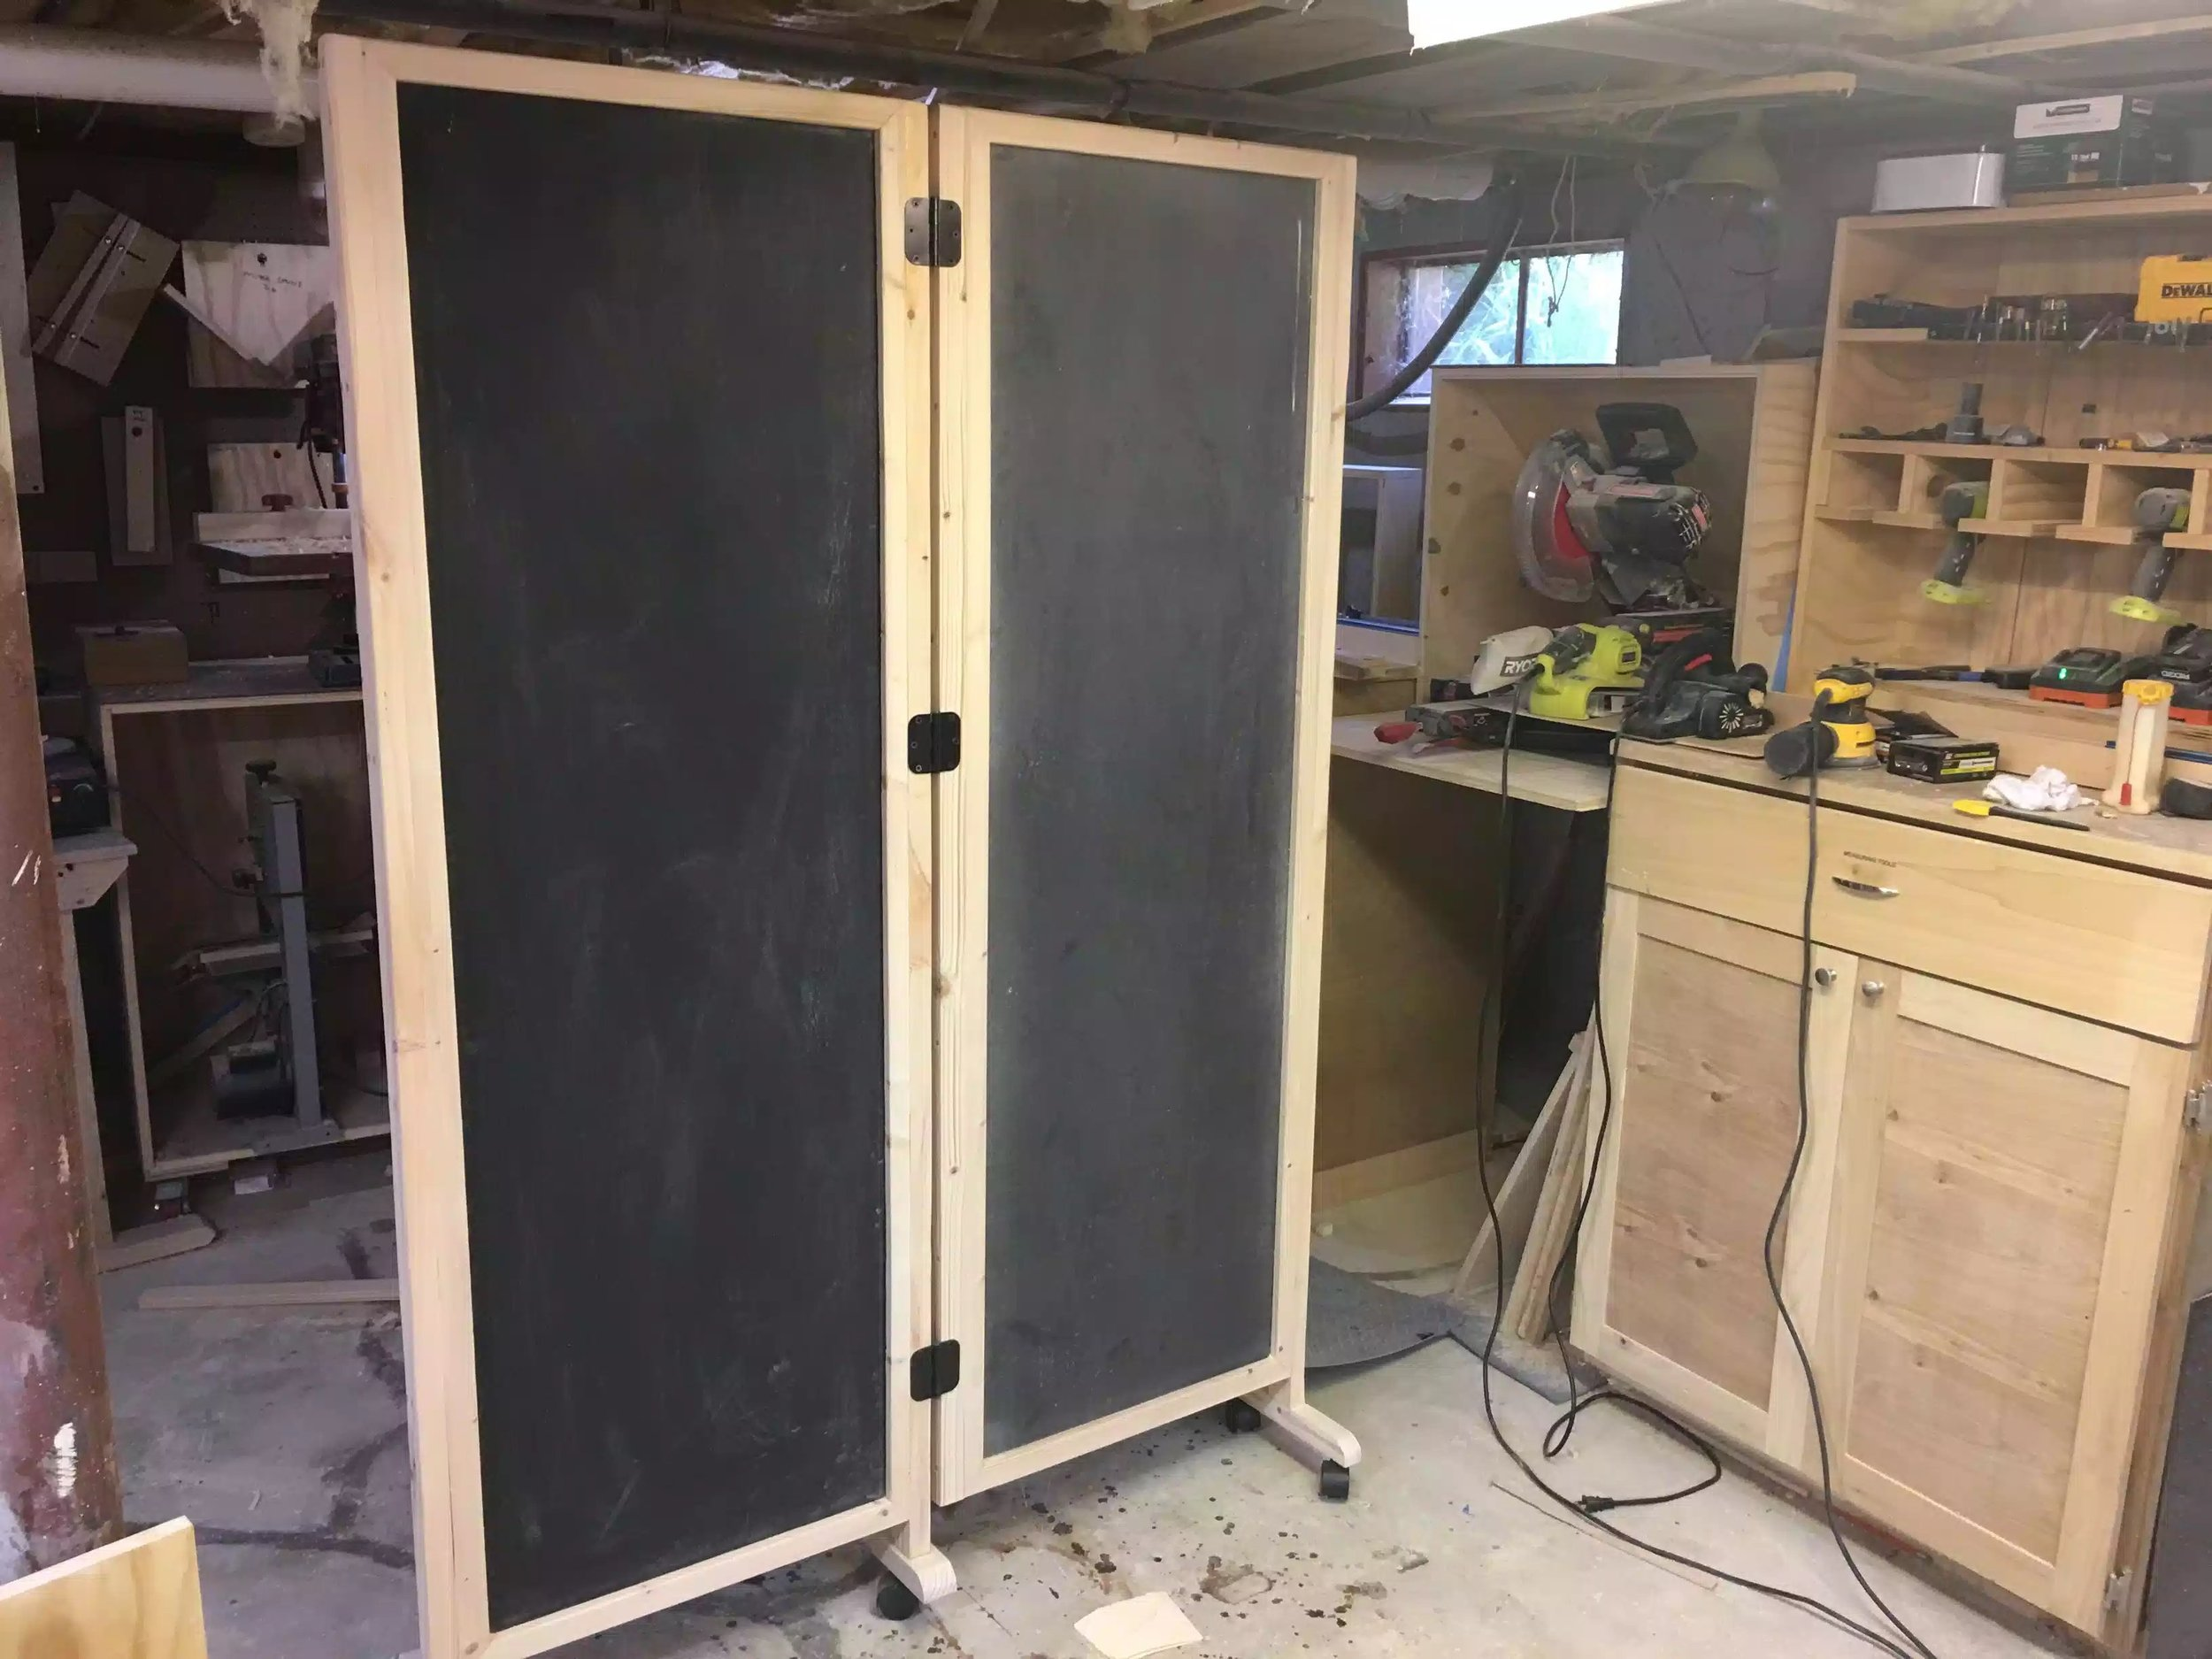 All hinges attached and we have a function divider.